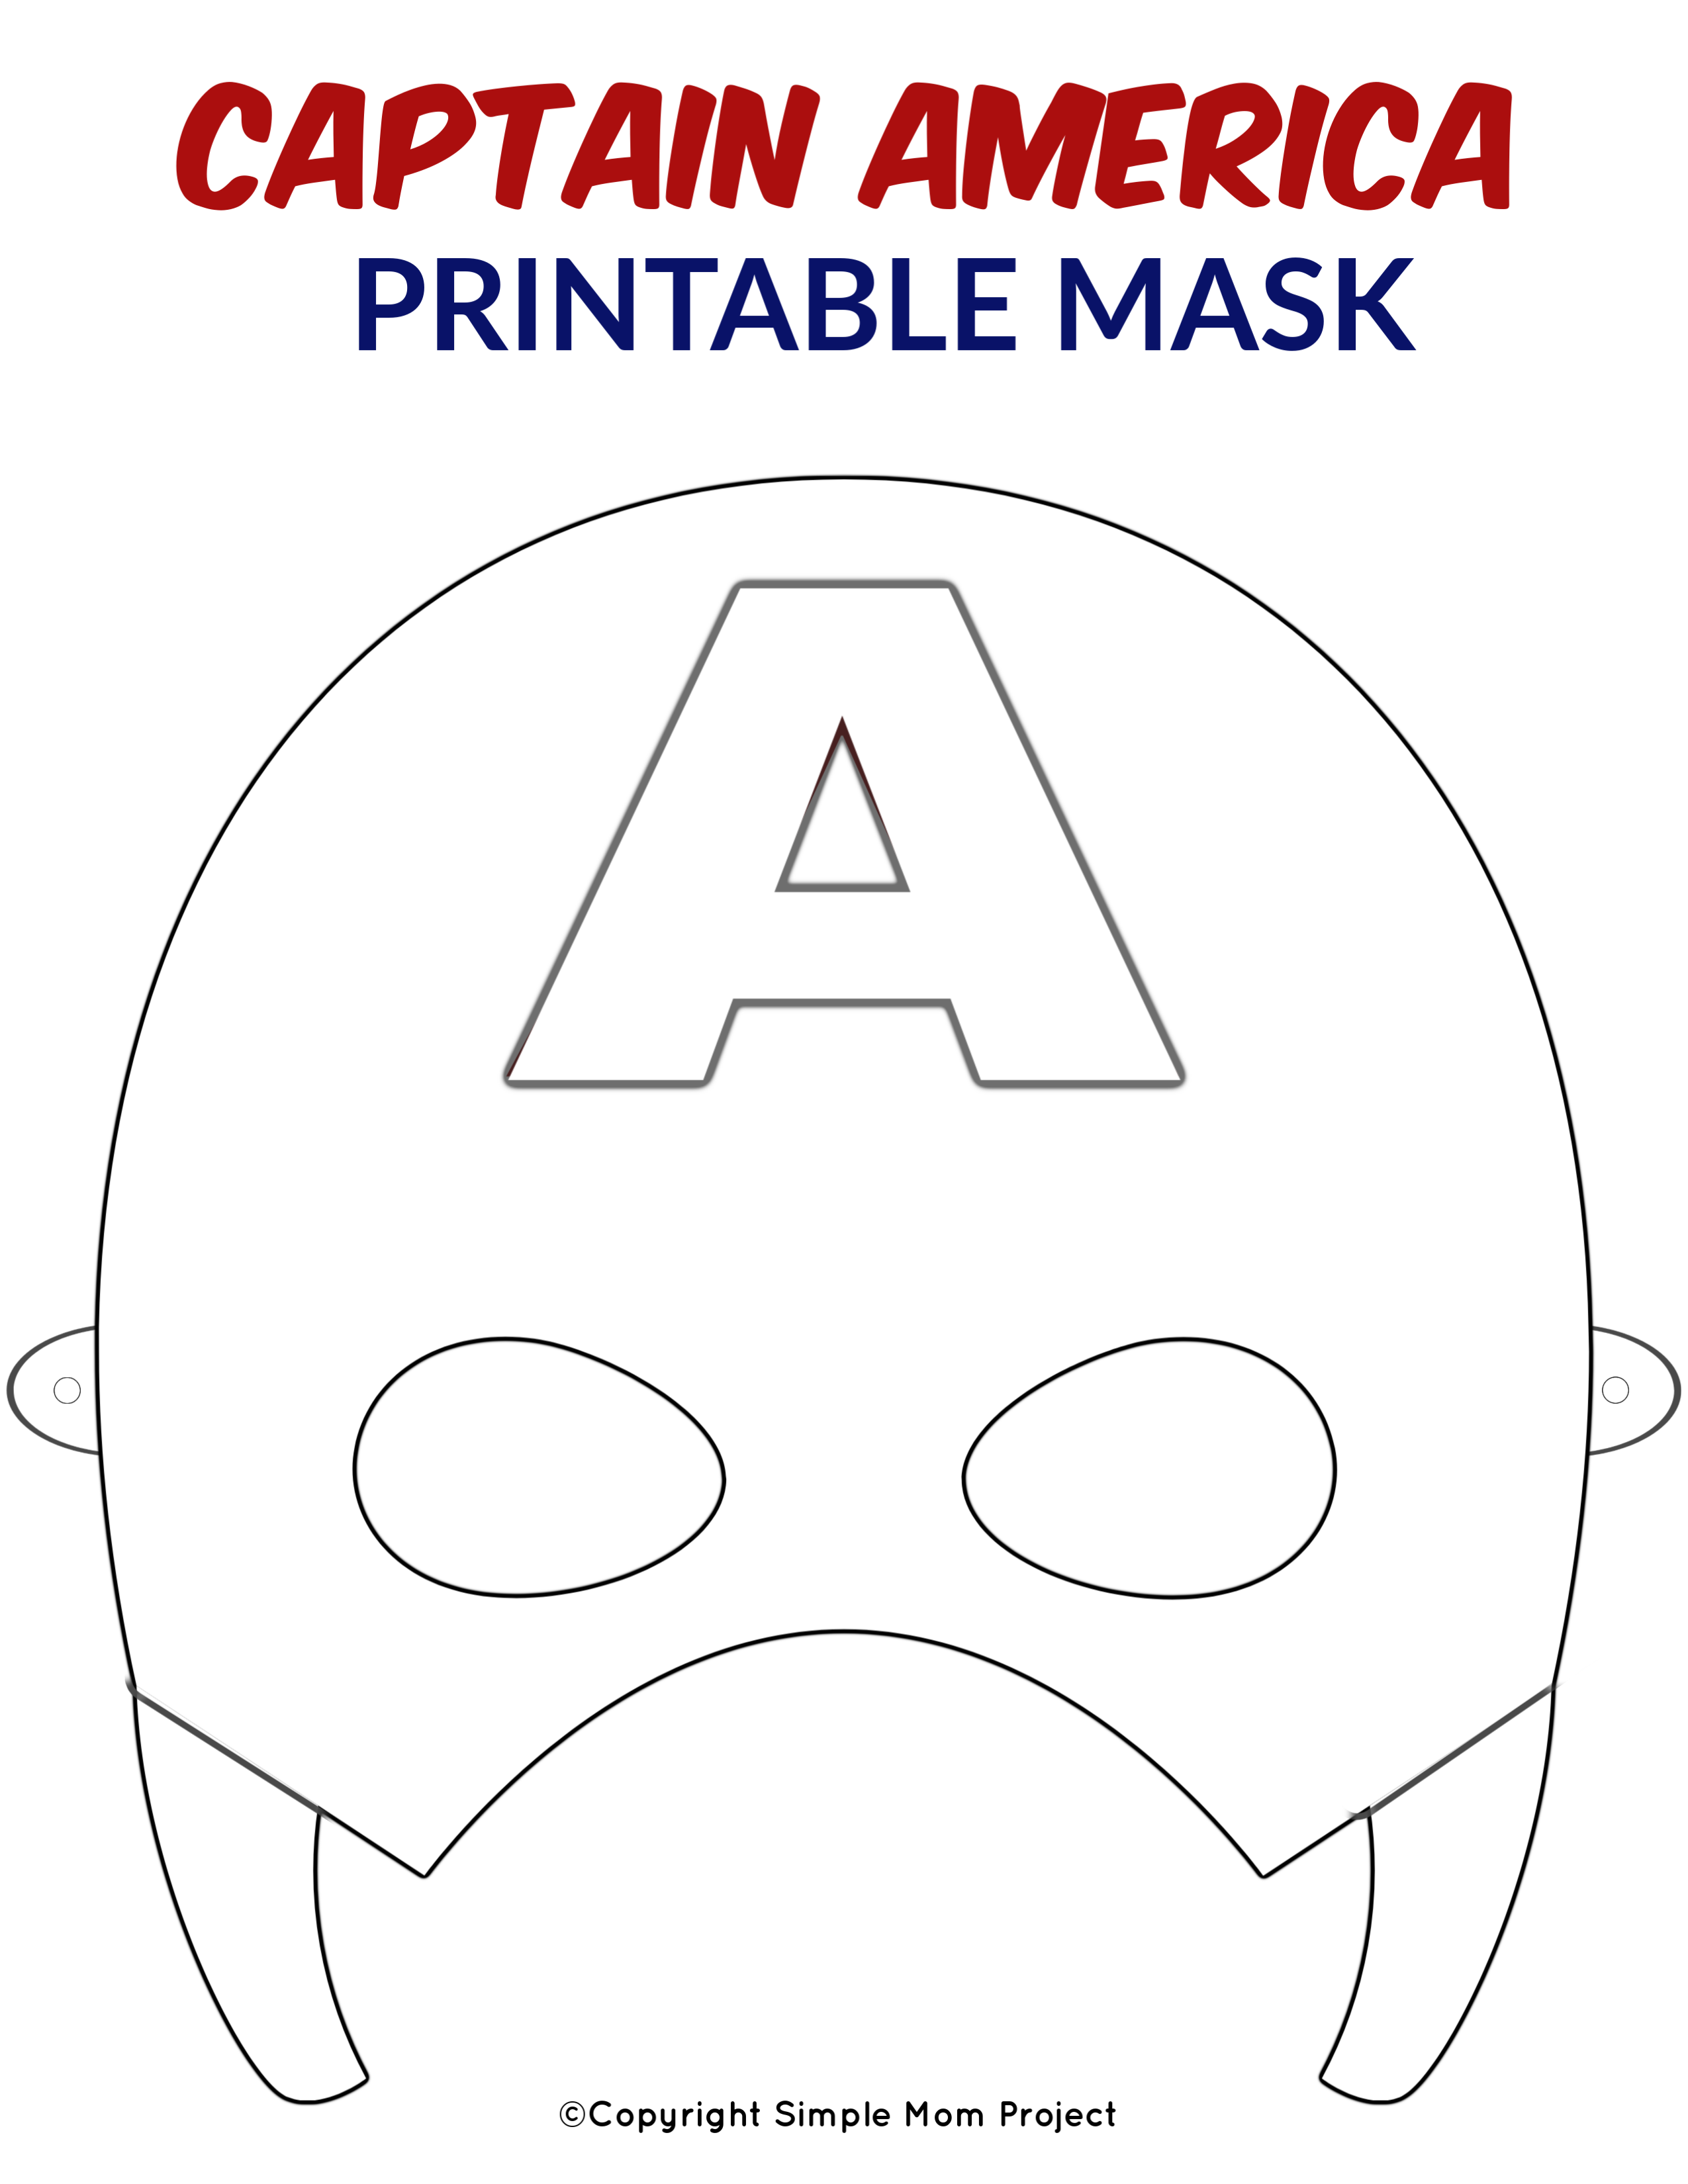 Pin By Eileen Caroline On Mascaras Captain America Coloring Pages Captain America Mask Superhero Mask Template